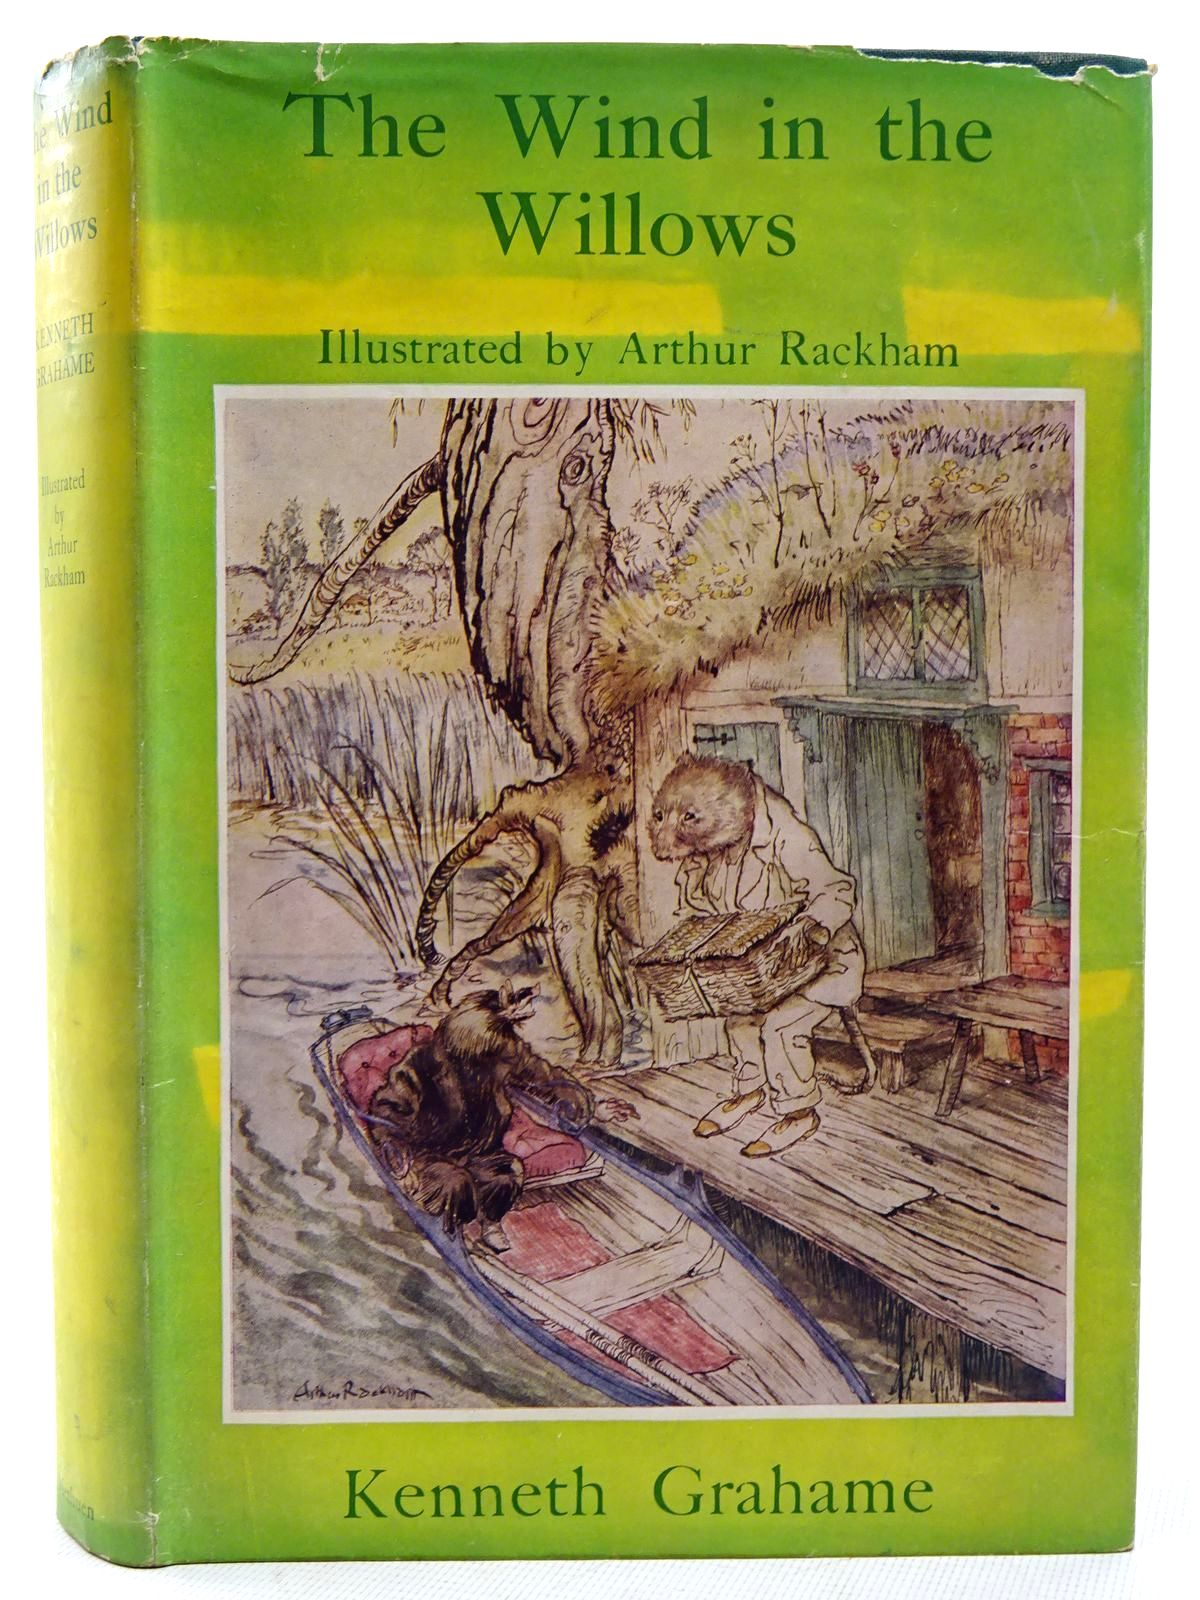 Photo of THE WIND IN THE WILLOWS written by Grahame, Kenneth illustrated by Rackham, Arthur published by Methuen & Co. Ltd. (STOCK CODE: 2126233)  for sale by Stella & Rose's Books